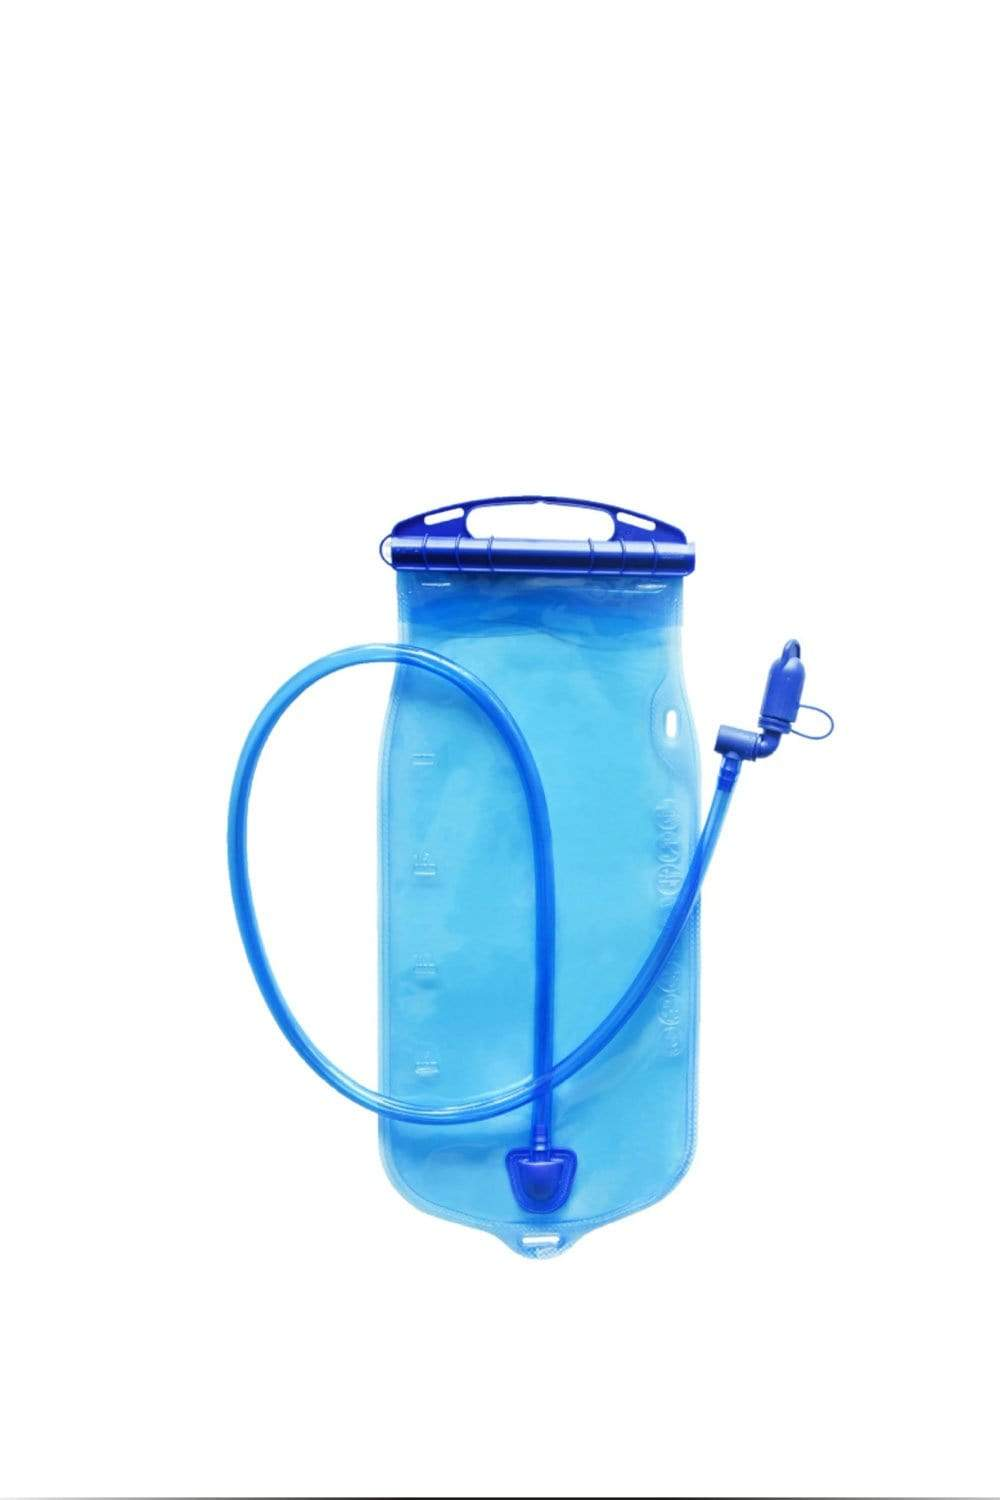 Water Carrier Water Container Bag, SGS Clear Plastic Water Bag for Camping Hiking Backpack Emergency, No-Leak Freezable Outdoor Foldable Water Bottle All Purpose, Cycling, Running, Travelling MIER